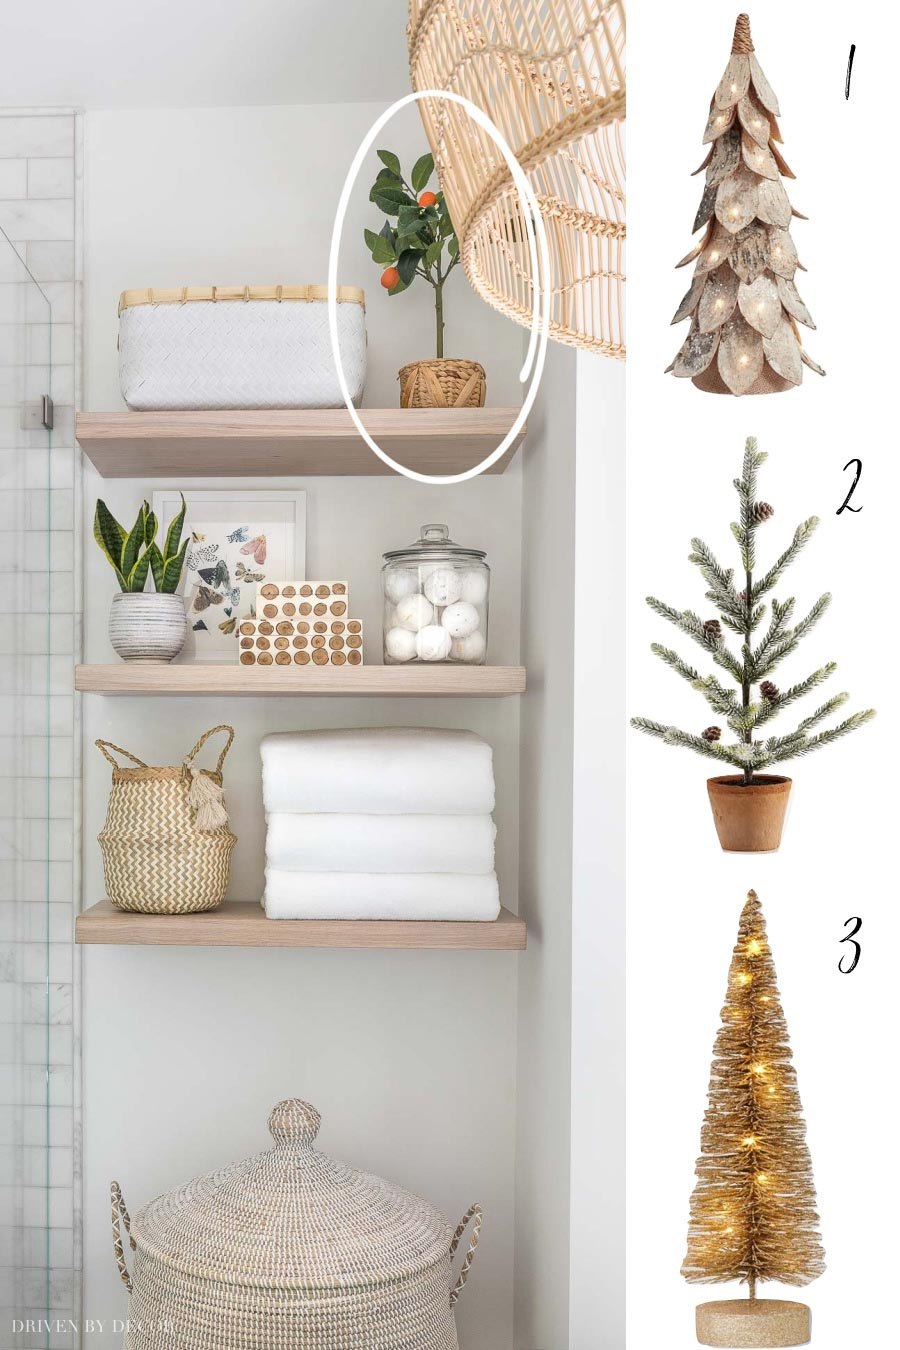 Three tabletop Christmas tree options for decorating smaller spaces!